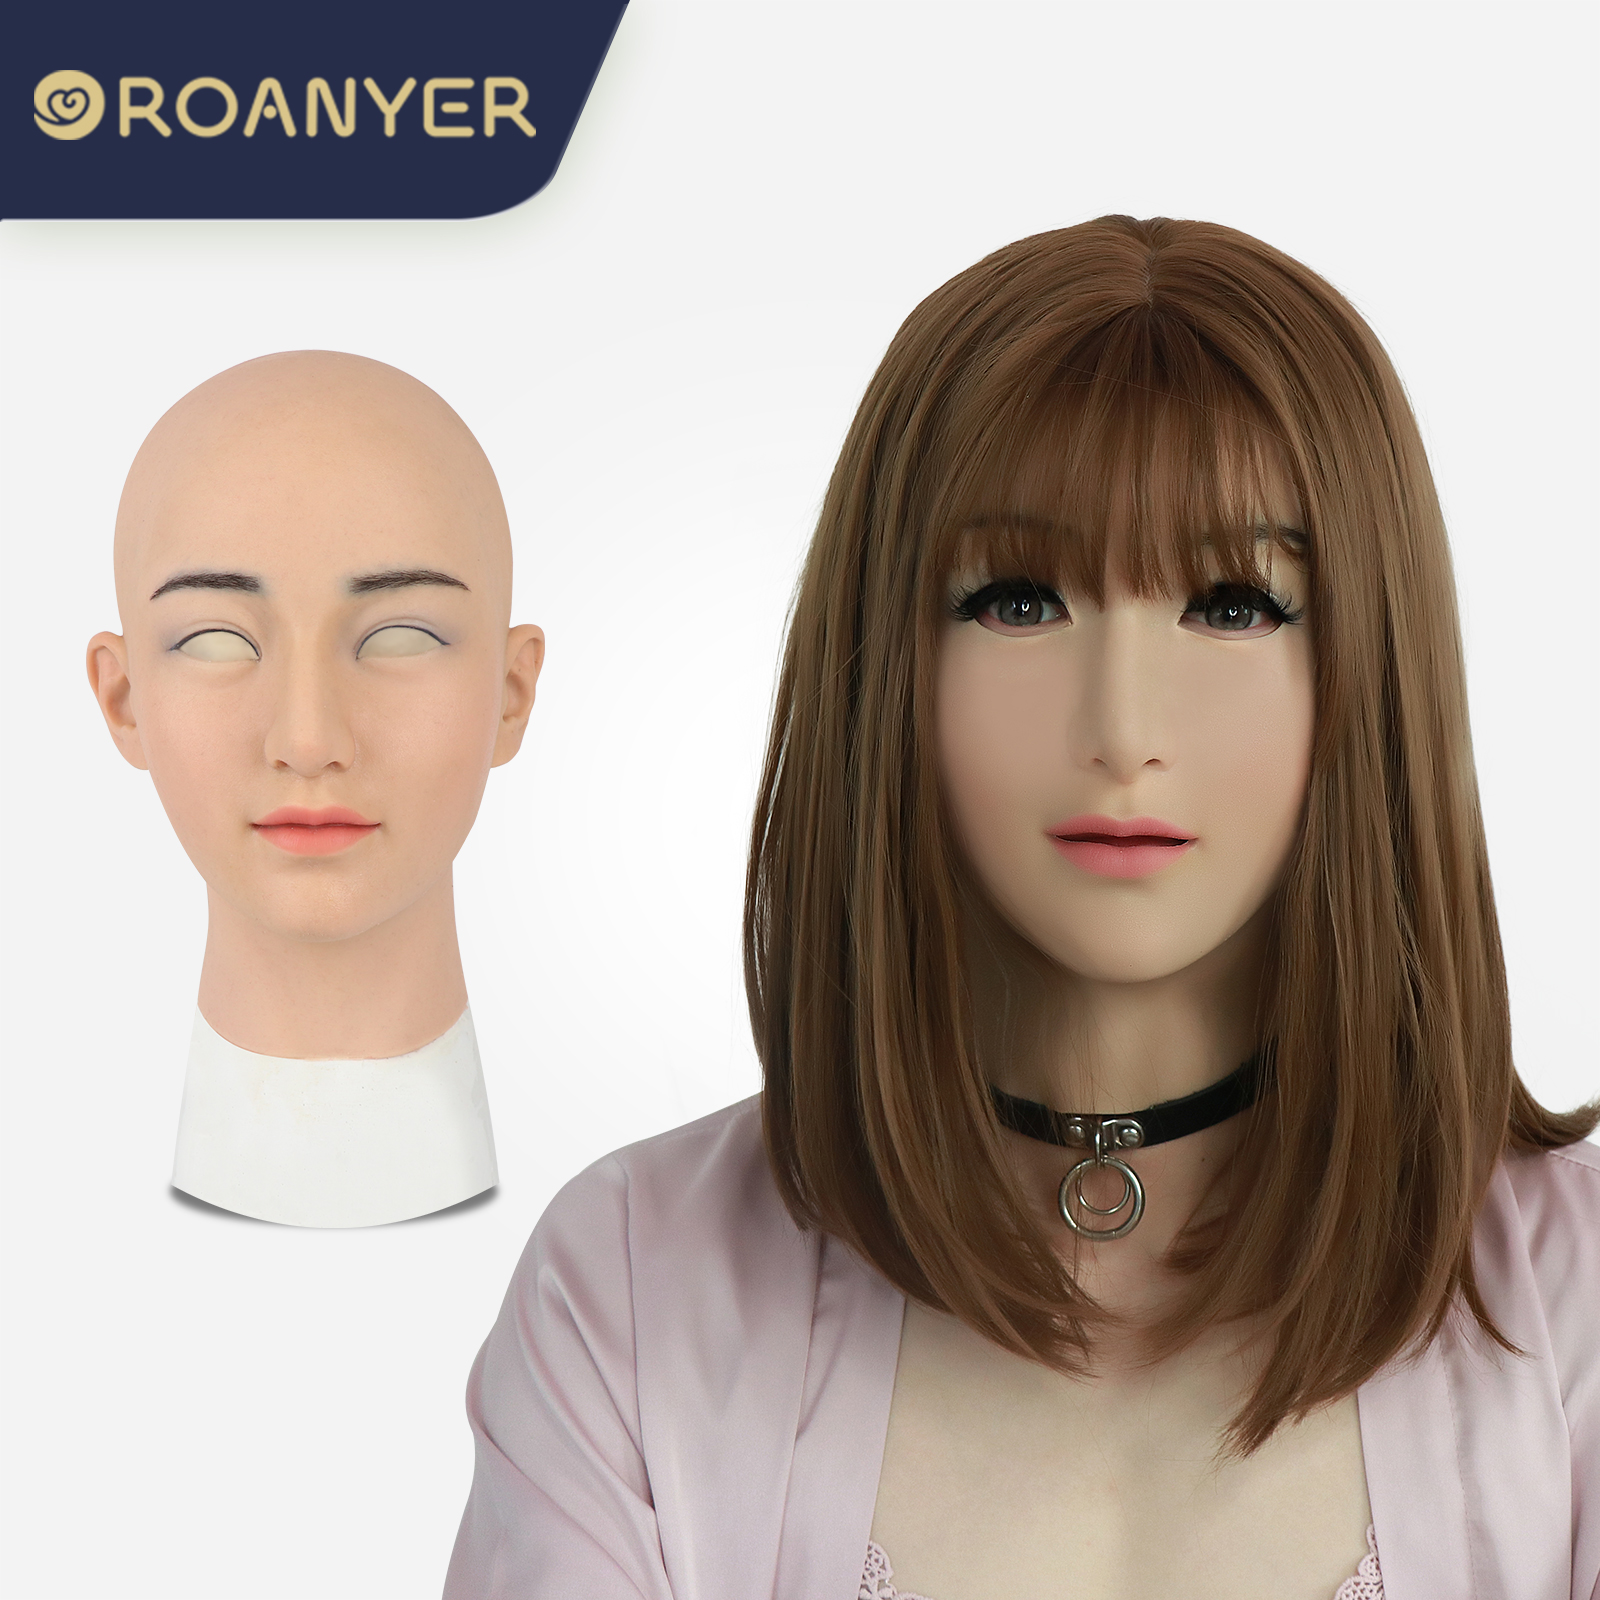 ROANYER 男の娘 女装 仮面 変装 マスク美人晴子